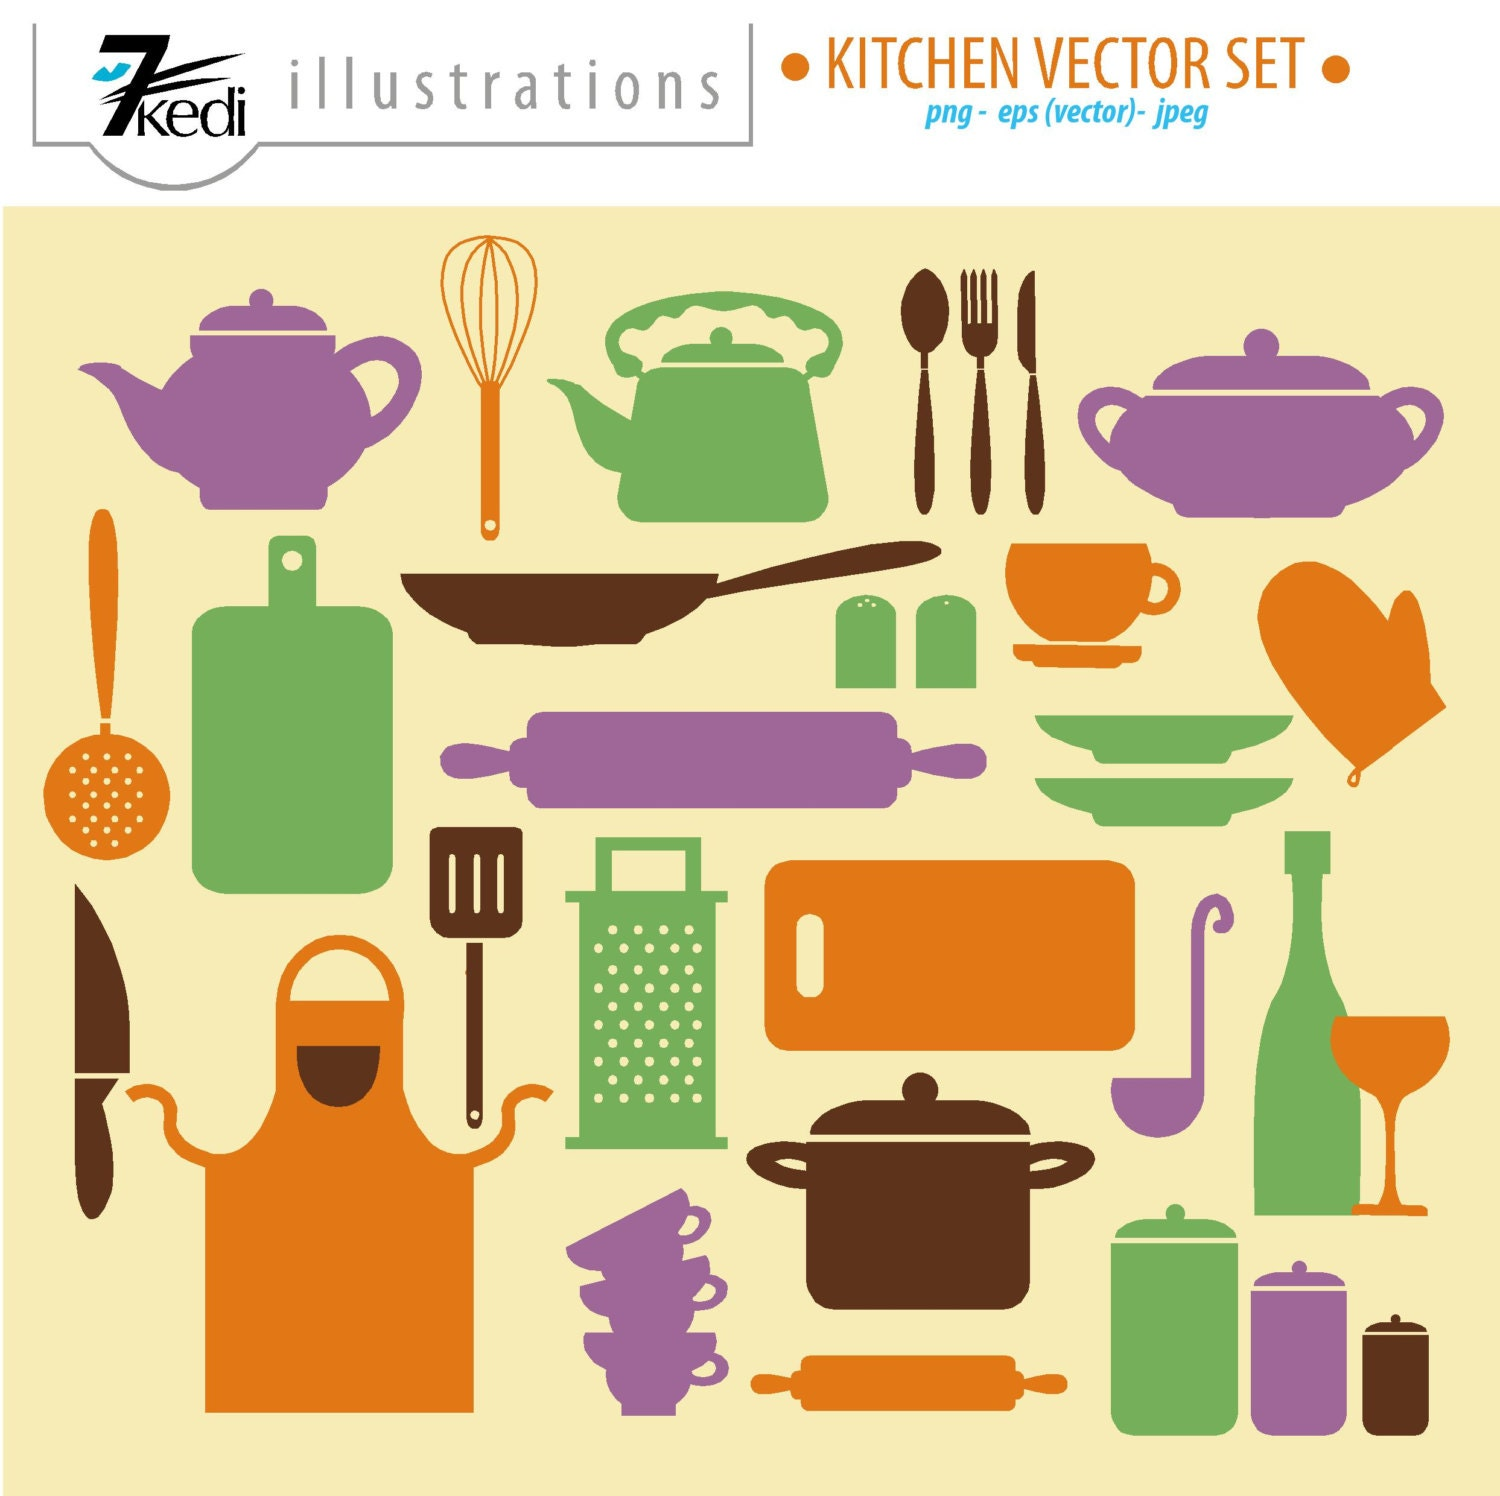 Vector Kitchen Set Kitchen Clip Art Kitchen Graphics By 7kedi